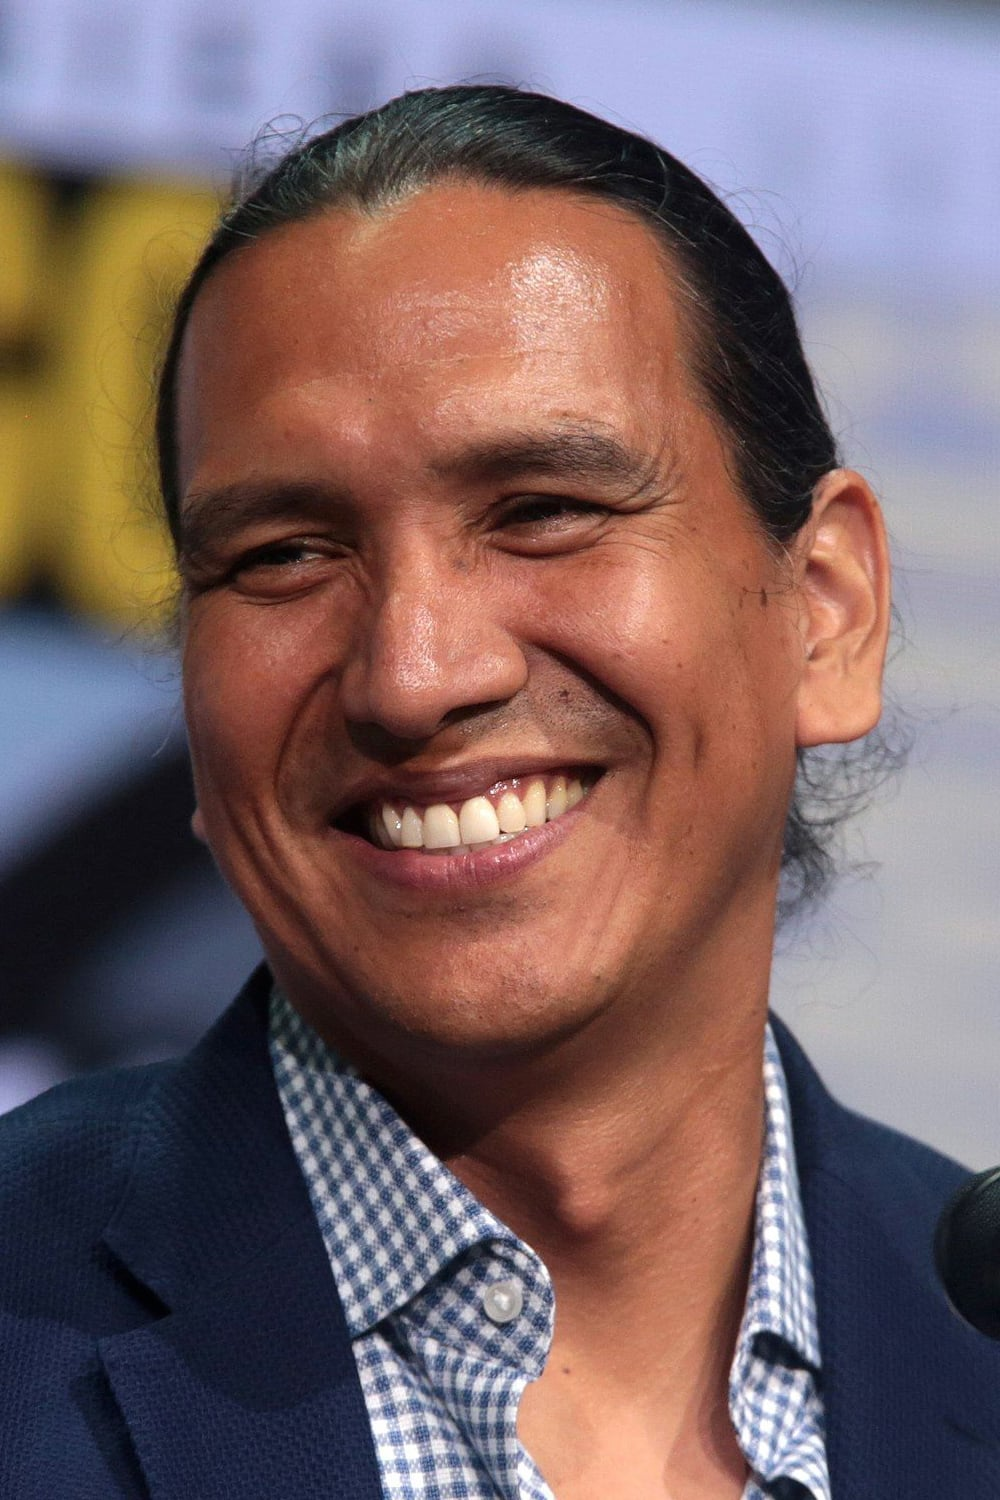 Eric Schweig Profile Images The Movie Database Tmdb Acteur canadien né le 19 juin 1967 à inuvik. eric schweig profile images the